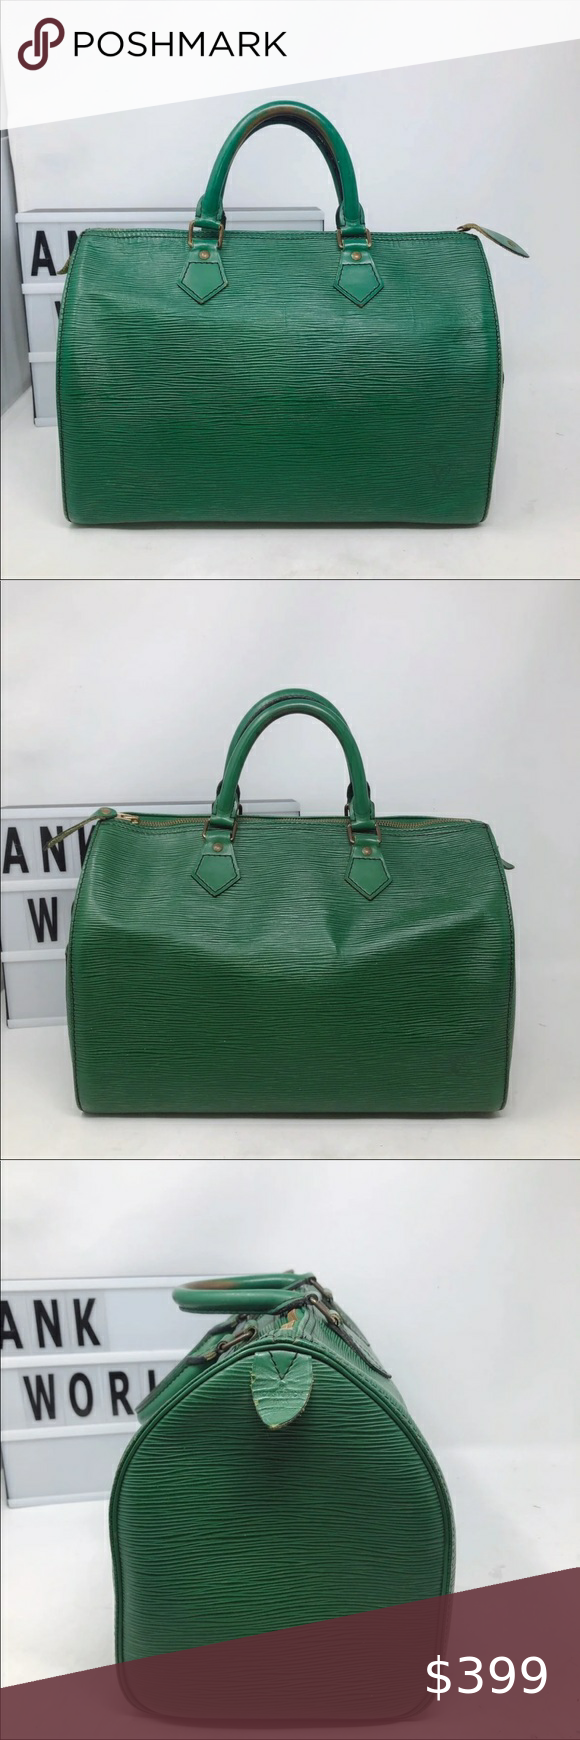 Louis Vuitton Green Speedy 30 Epi Leather Bag Welcome to ANK WORLD, Your trustworthy boutique for authentic designer vintage items!   100% AUTHENTIC Louis Vuitton Speedy 30  Comment: Speedy 30,  made in 1990s in good condition. A Must Have Classic!  Condition: good  Exterior: normal signs of wear Interior: normal signs of wear  Hardware: scratches  Size: 12' x 10.4' x 7' Material: leather Date code: VI0912 Smell: none Comes with: none  Thanks for looking! Louis Vuitton Bags Satchels